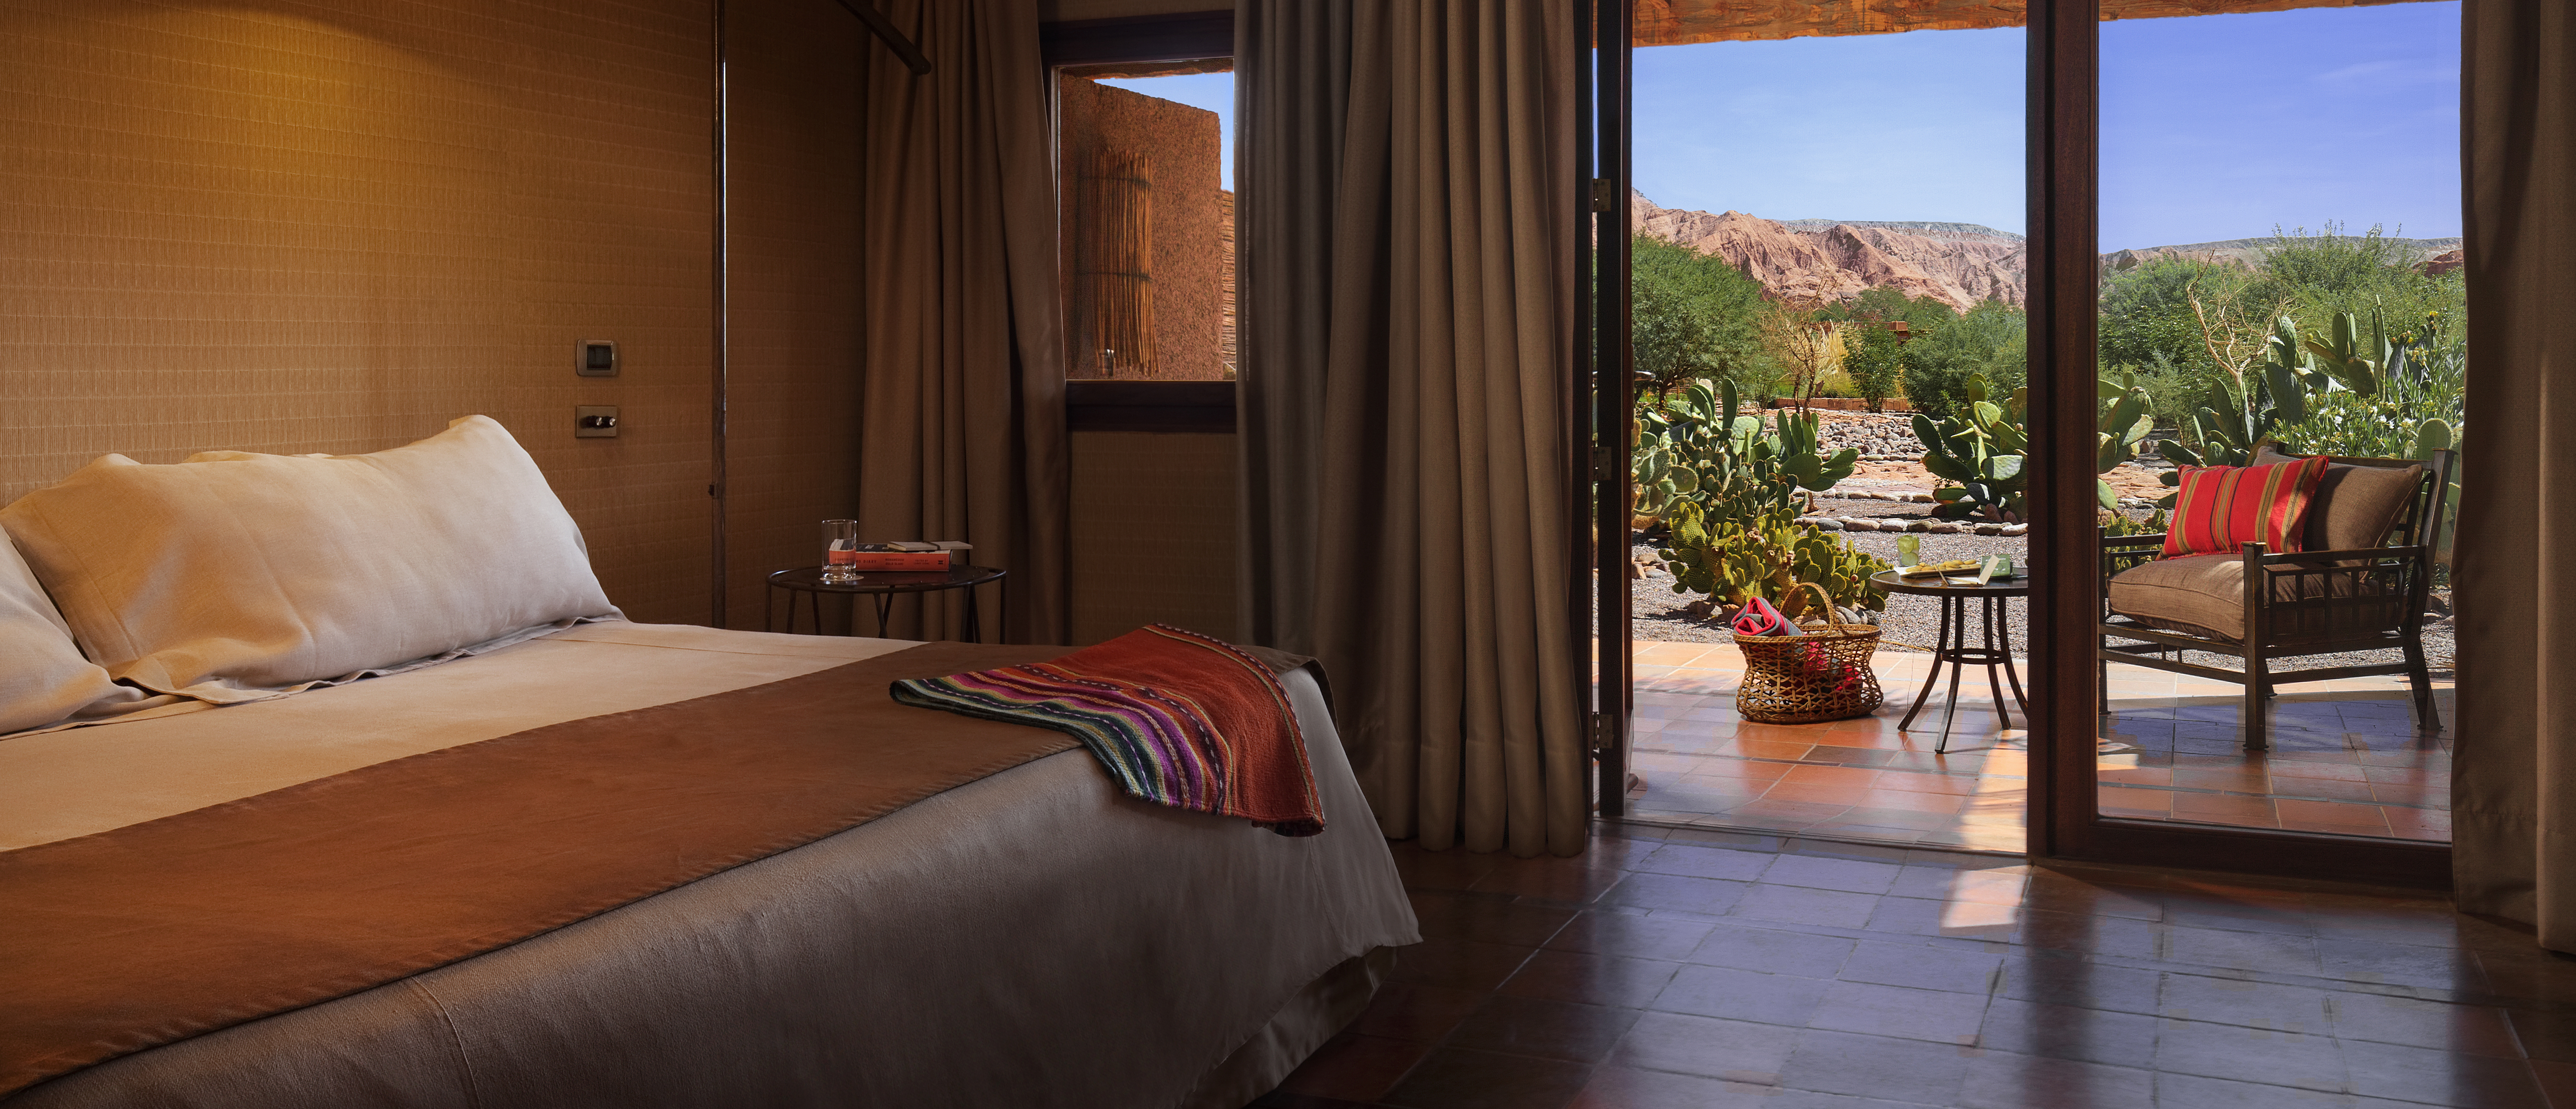 alto-atacama-desert-lodge-bedroom